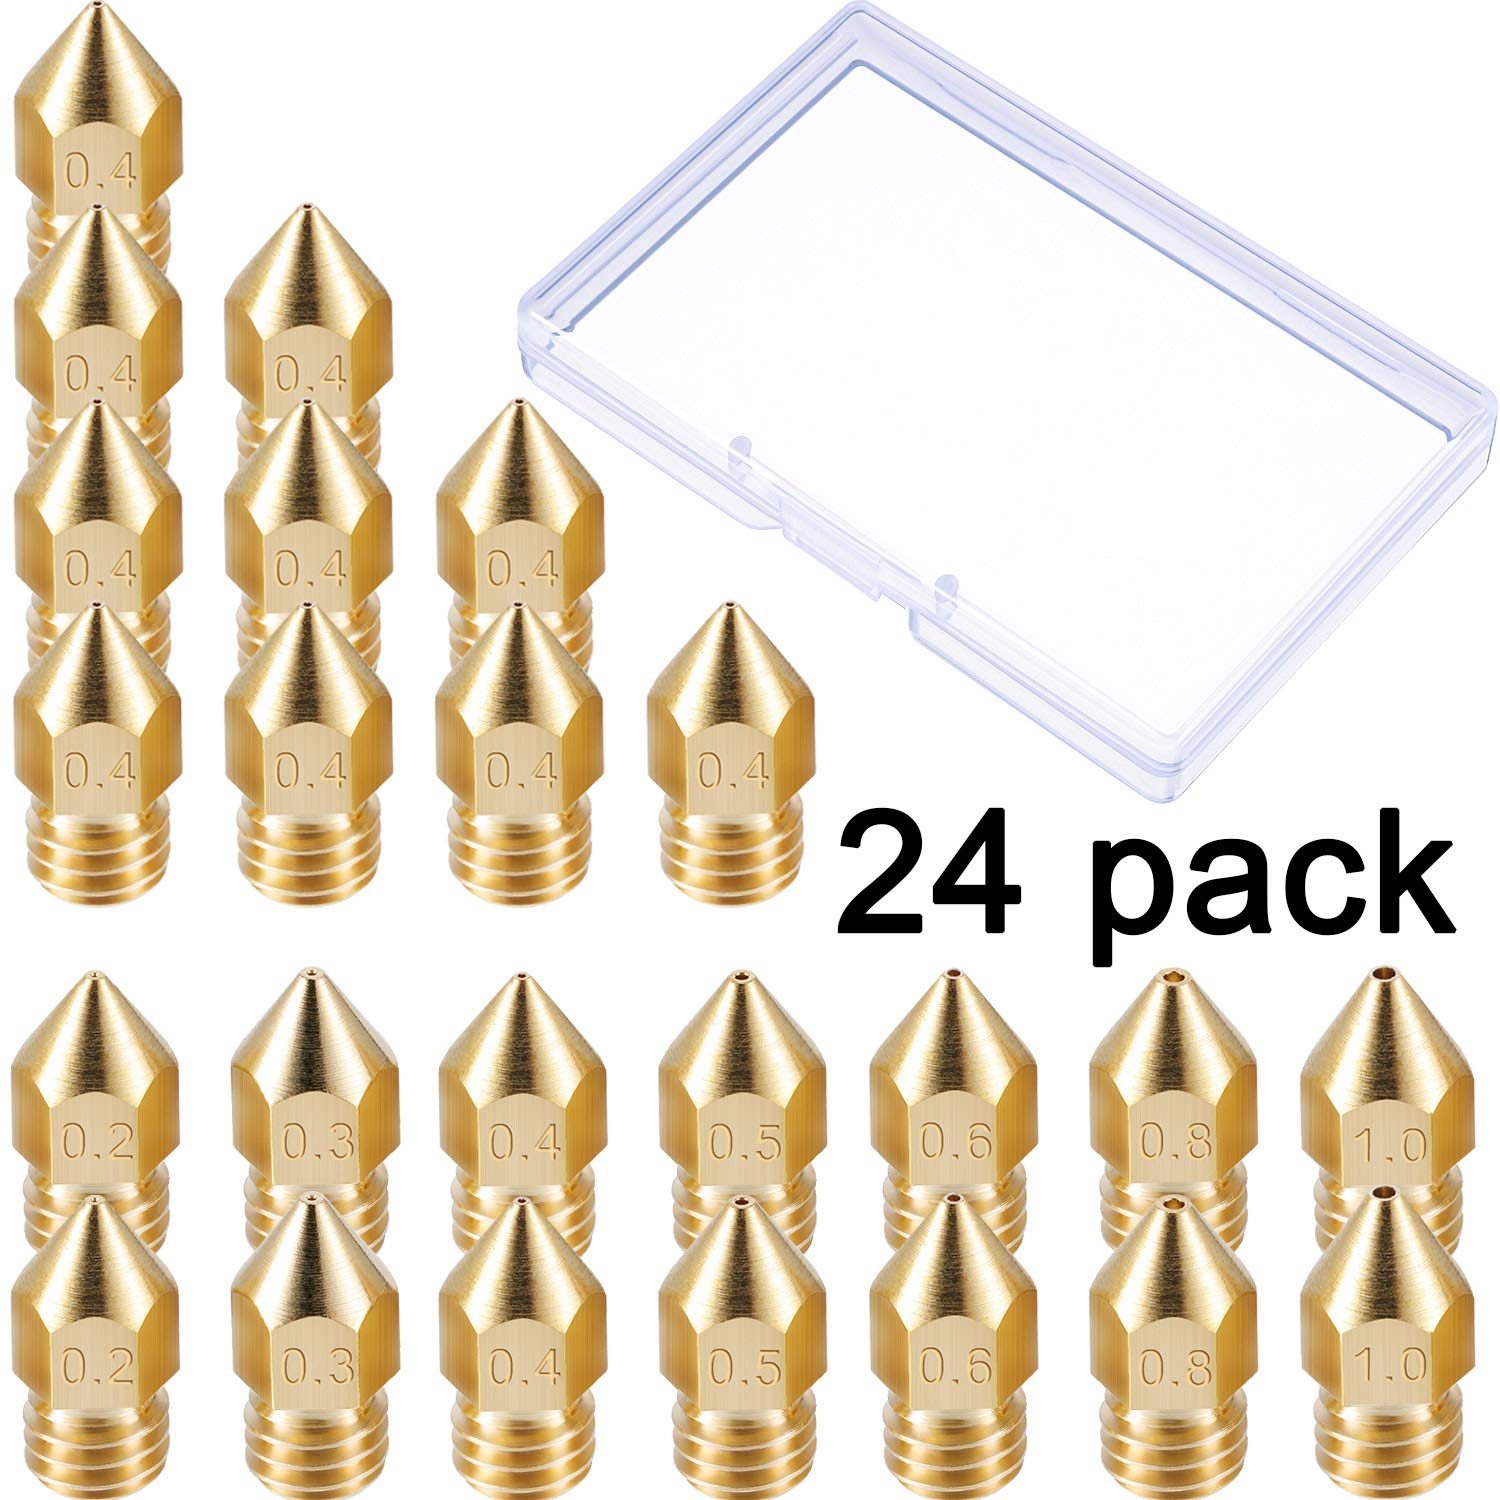 24 Pack 3D Printer Extruder Nozzles MK8 Nozzle 7 Different Size 0.2 mm, 0.3 mm, 0.4 mm, 0.5 mm, 0.6 mm, 0.8 mm, 1.0 mm with Clean Box Compatible with Makerbot Creality CR-10